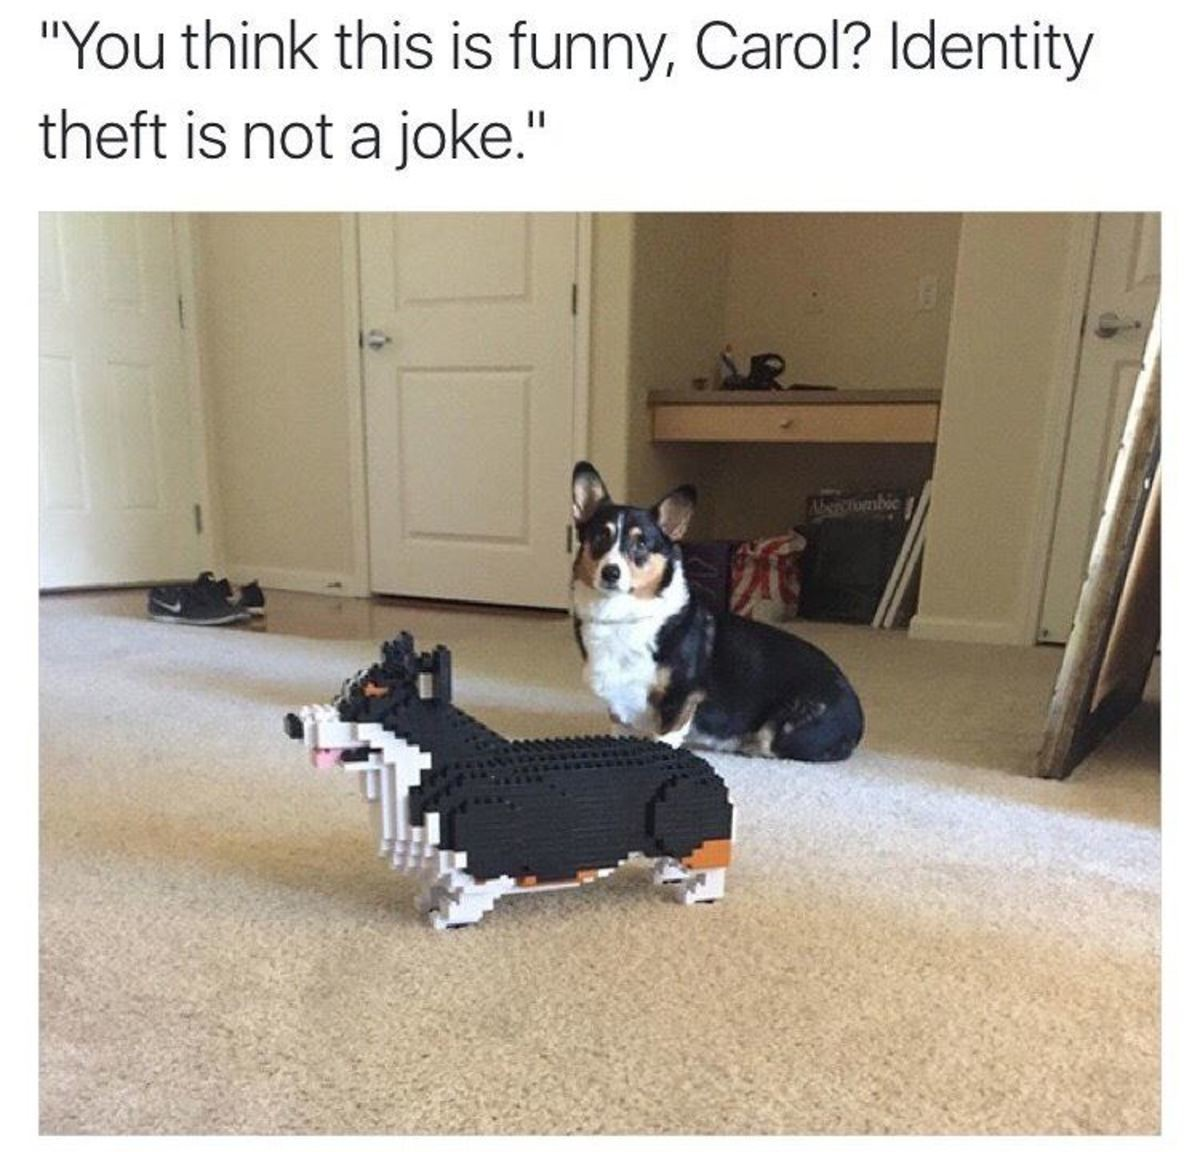 """Identity Theft. . You think i' iller theft is not 'jill. joke."""". I don't know why, but insults + suburban mom name always crack me up"""